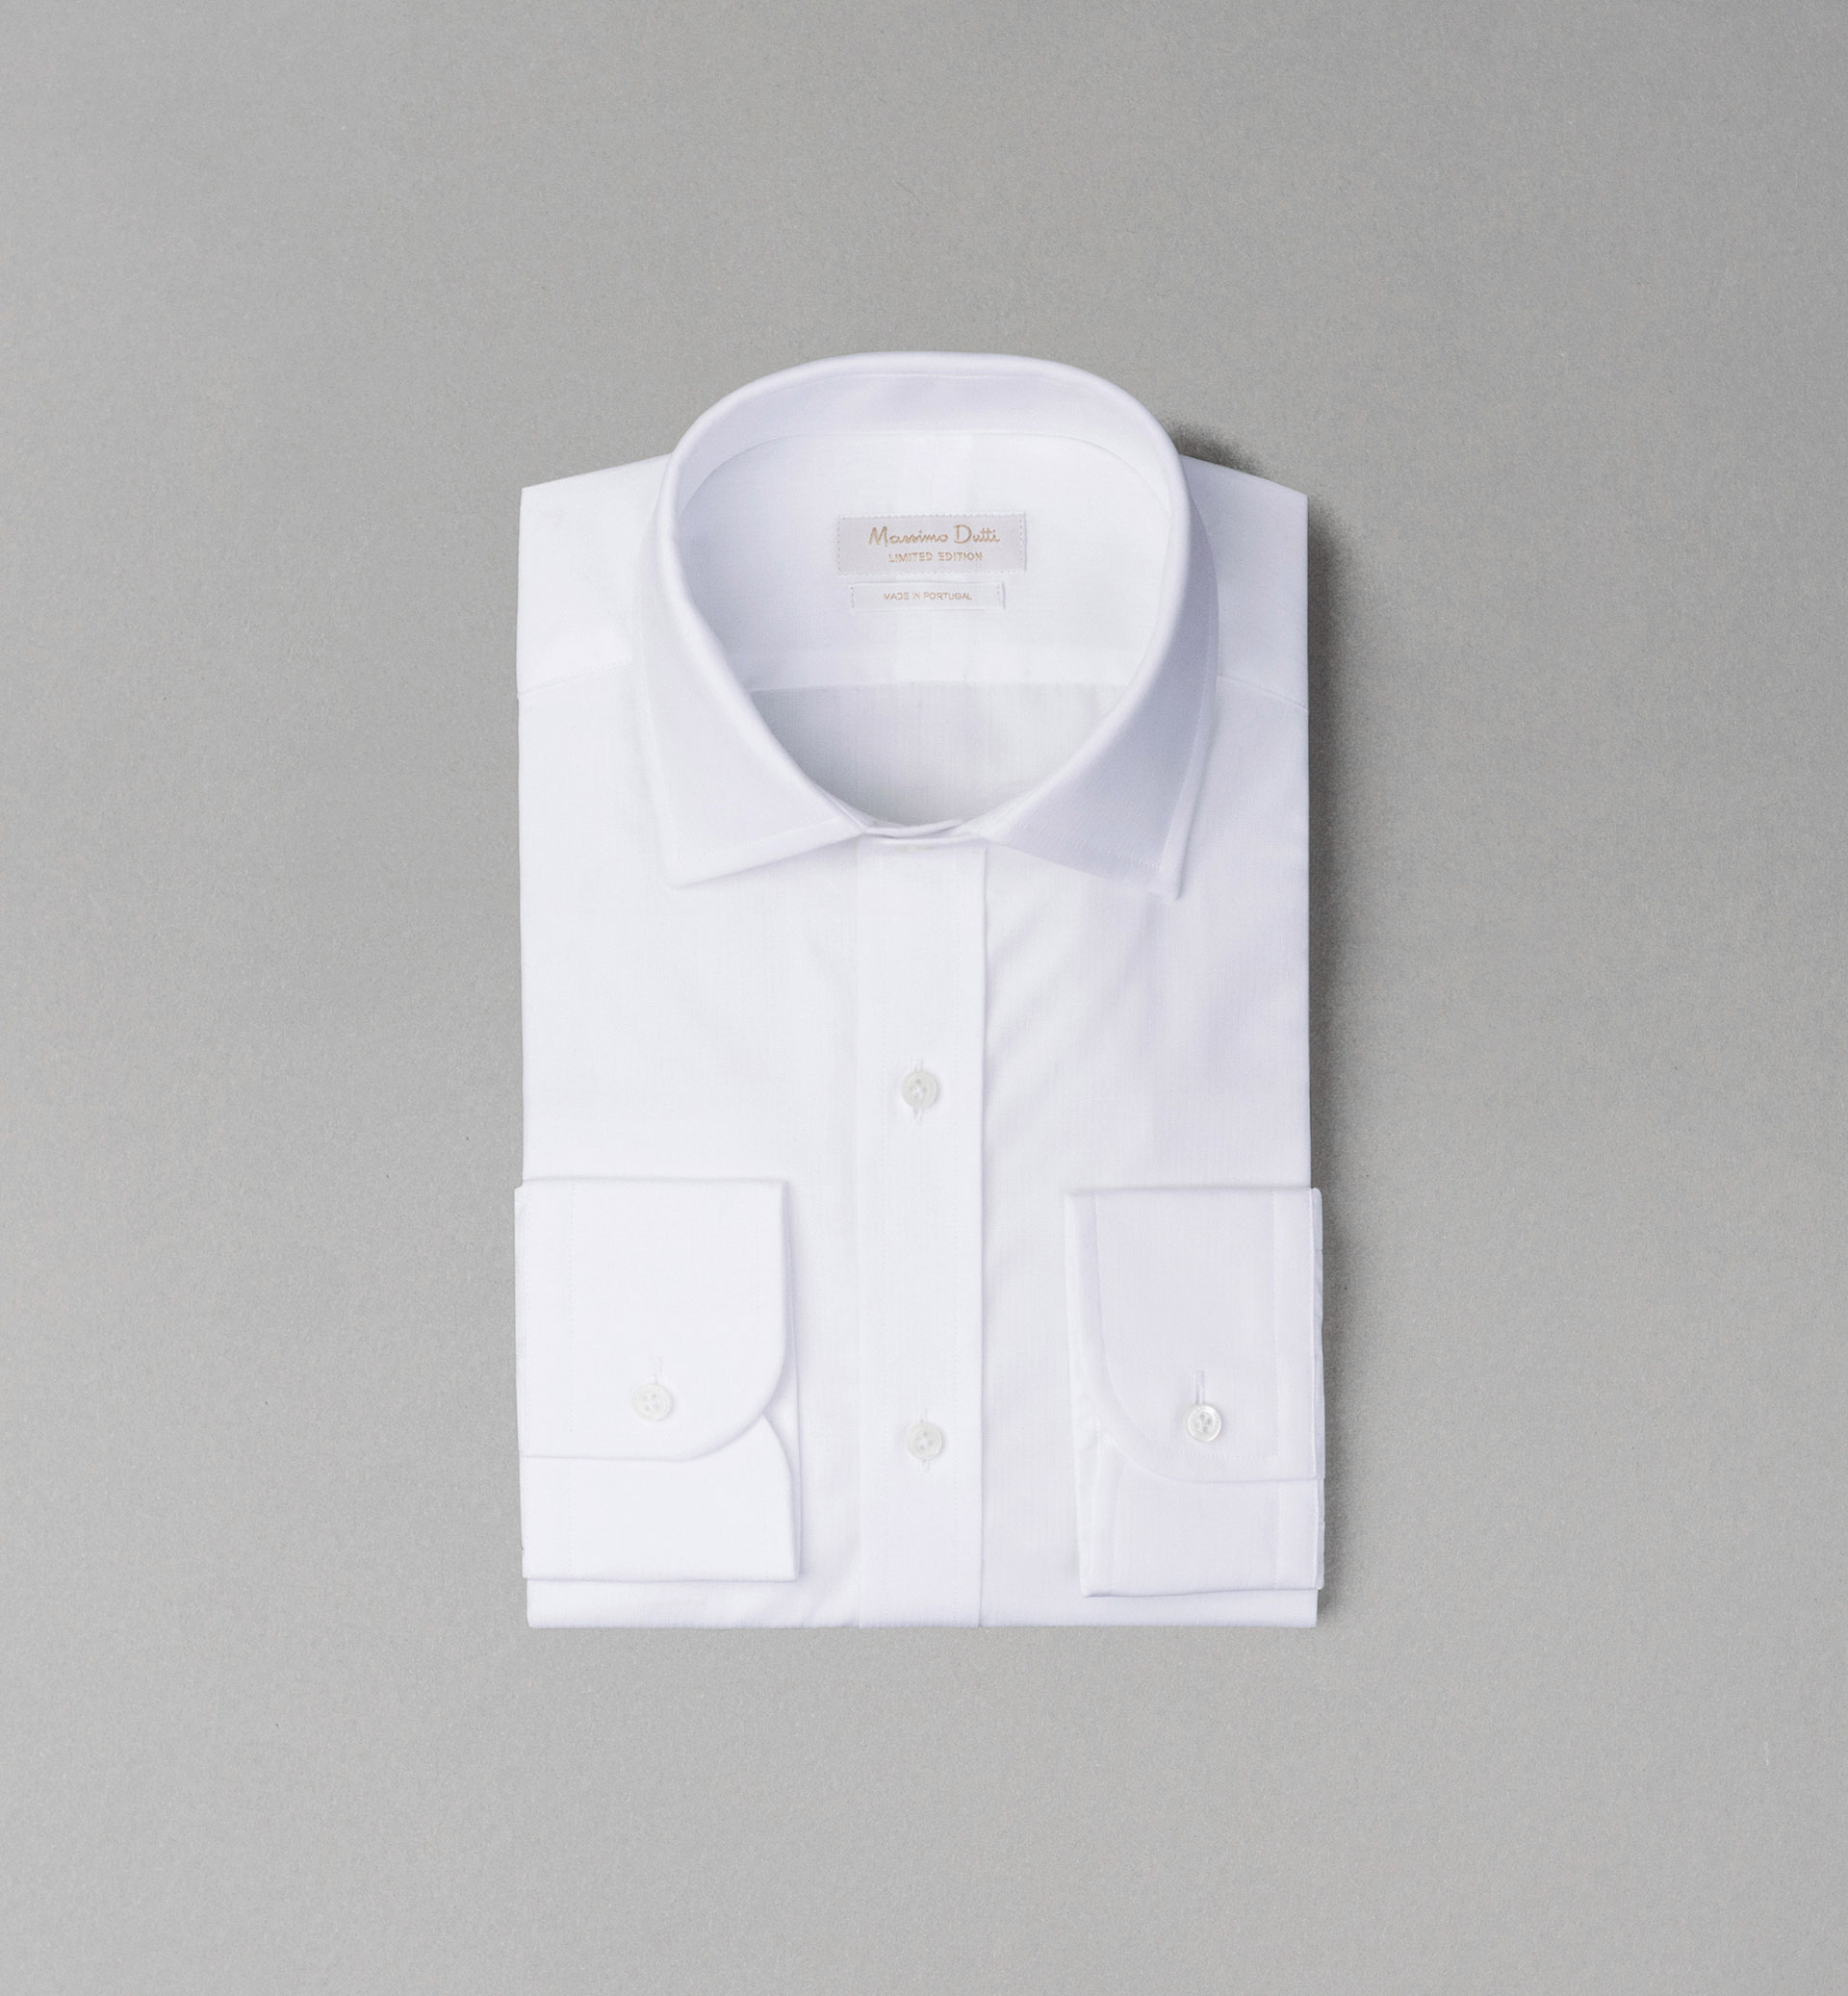 PERSONAL TAILORING WHITE TEXTURED WEAVE SHIRT WITH CUFFLINKS